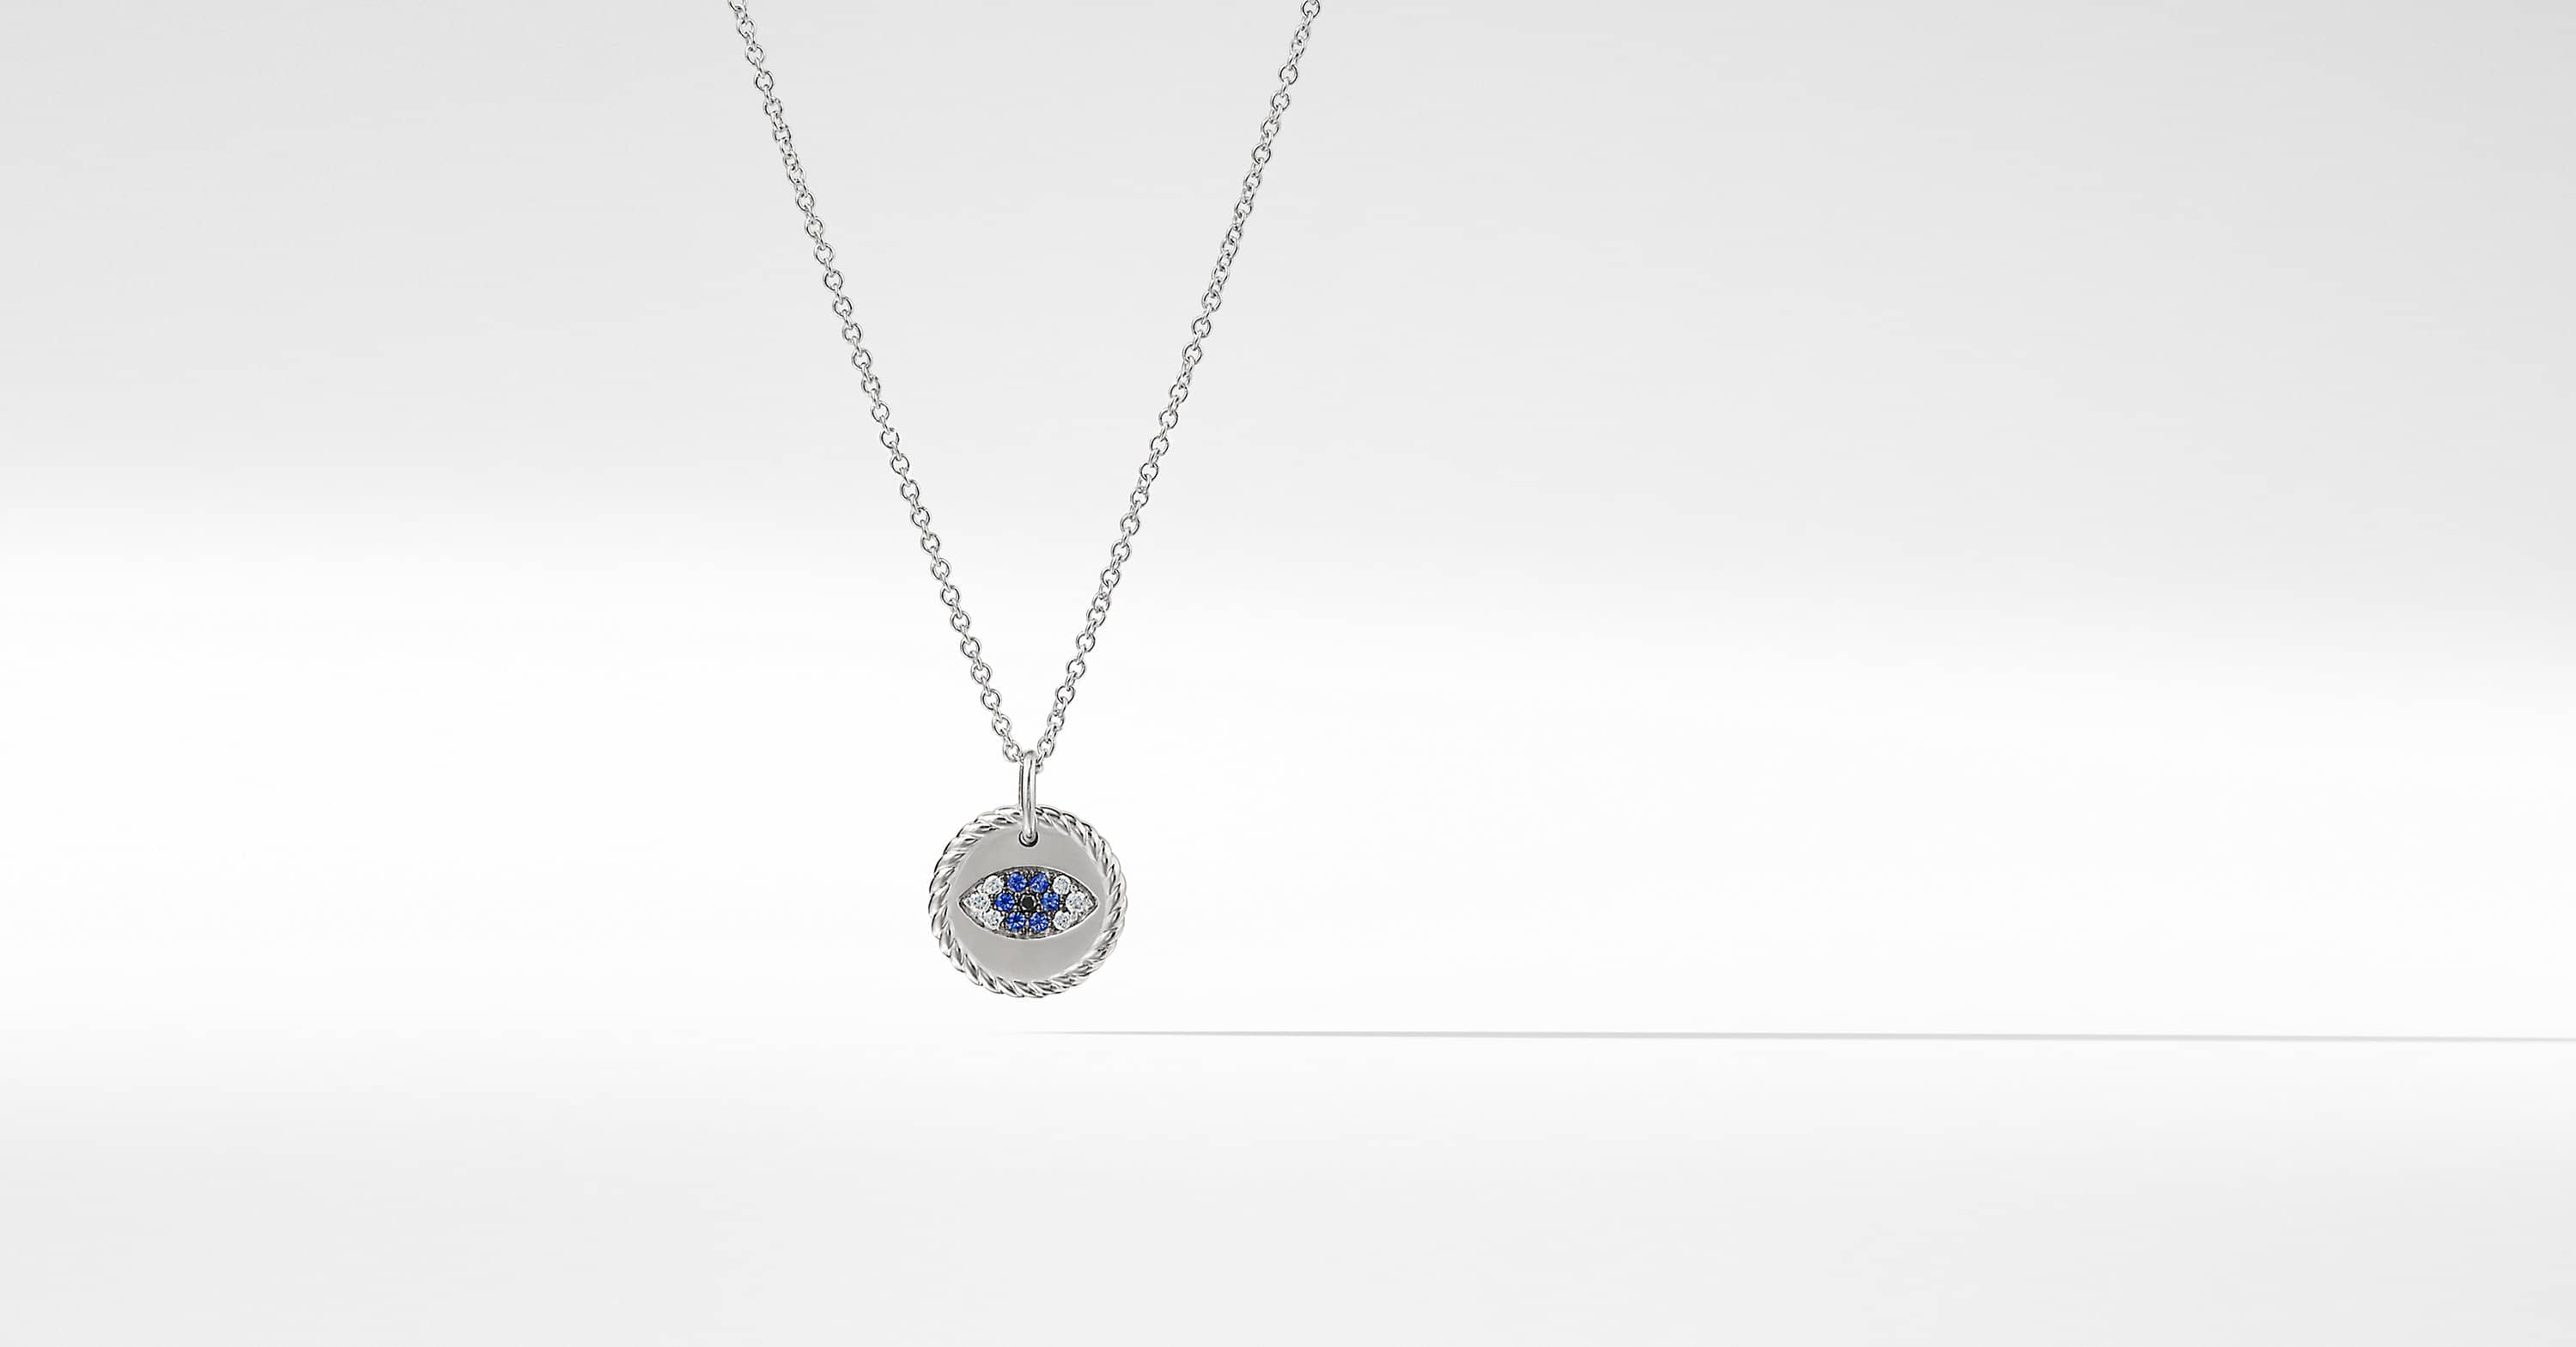 Cable Collectibles Evil Eye Necklace with Diamonds and Light Blue Sapphires in 18K White Gold